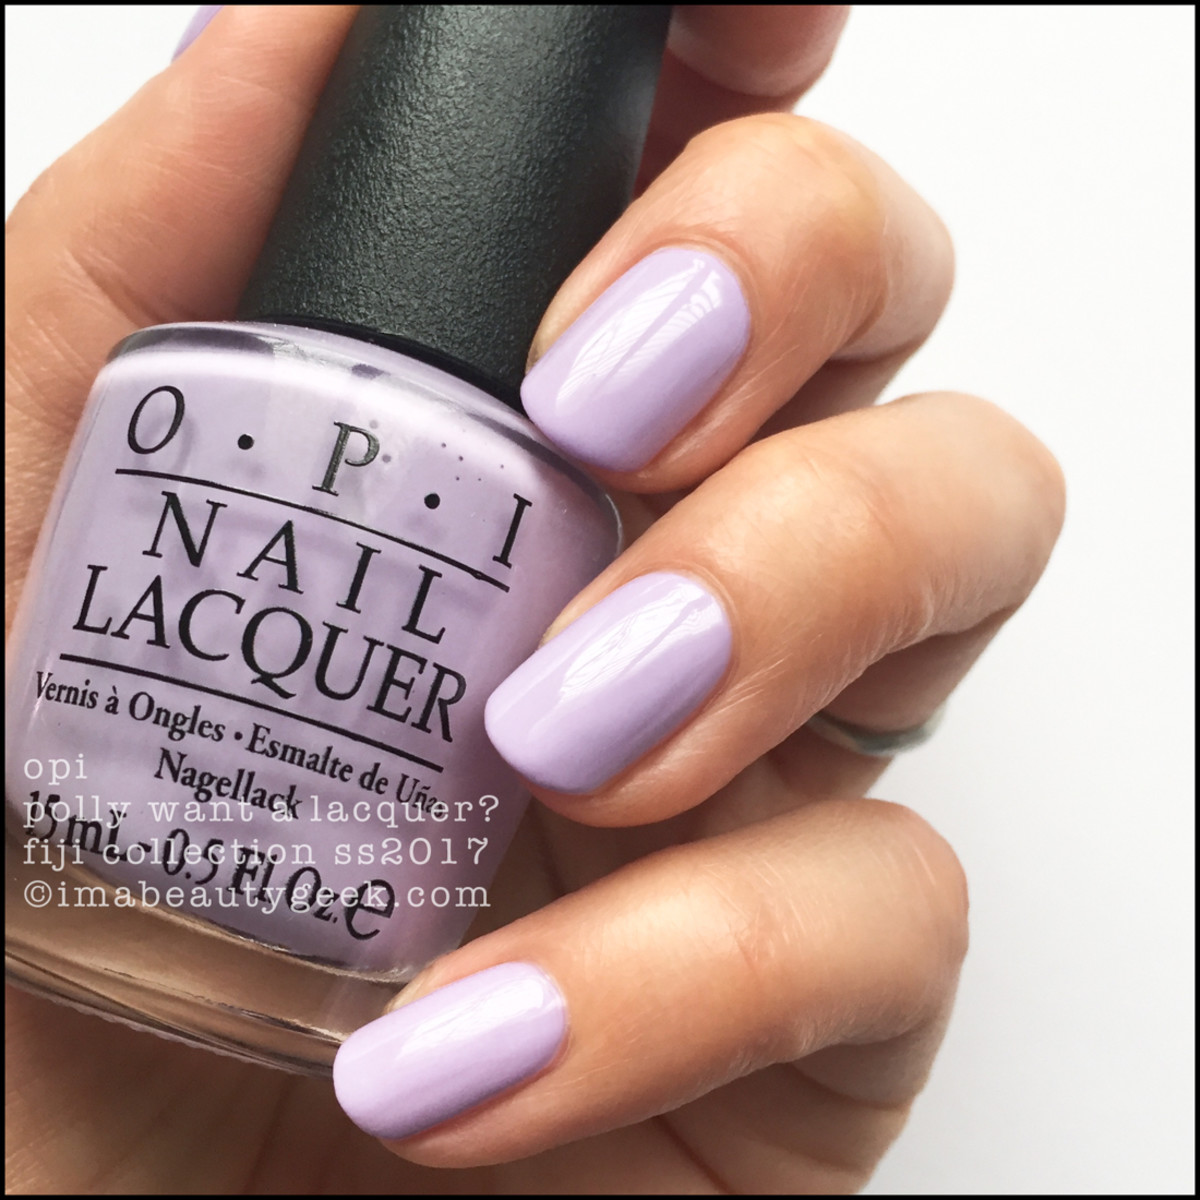 OPI Polly Want a Lacquer_OPI Fiji Collection Swatches Review 2017